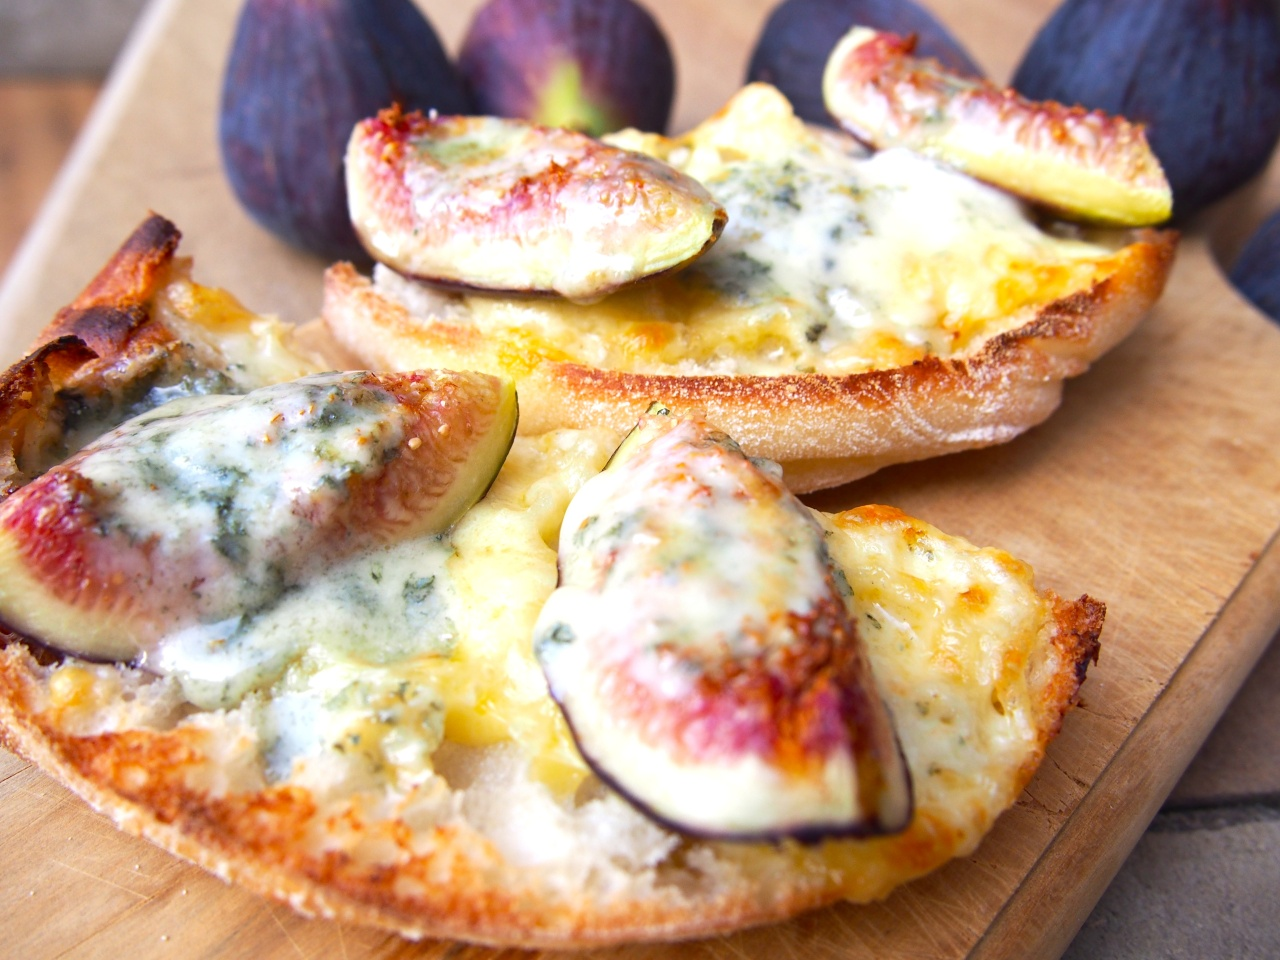 Grilled figs with Danish Blue on Turkishbread